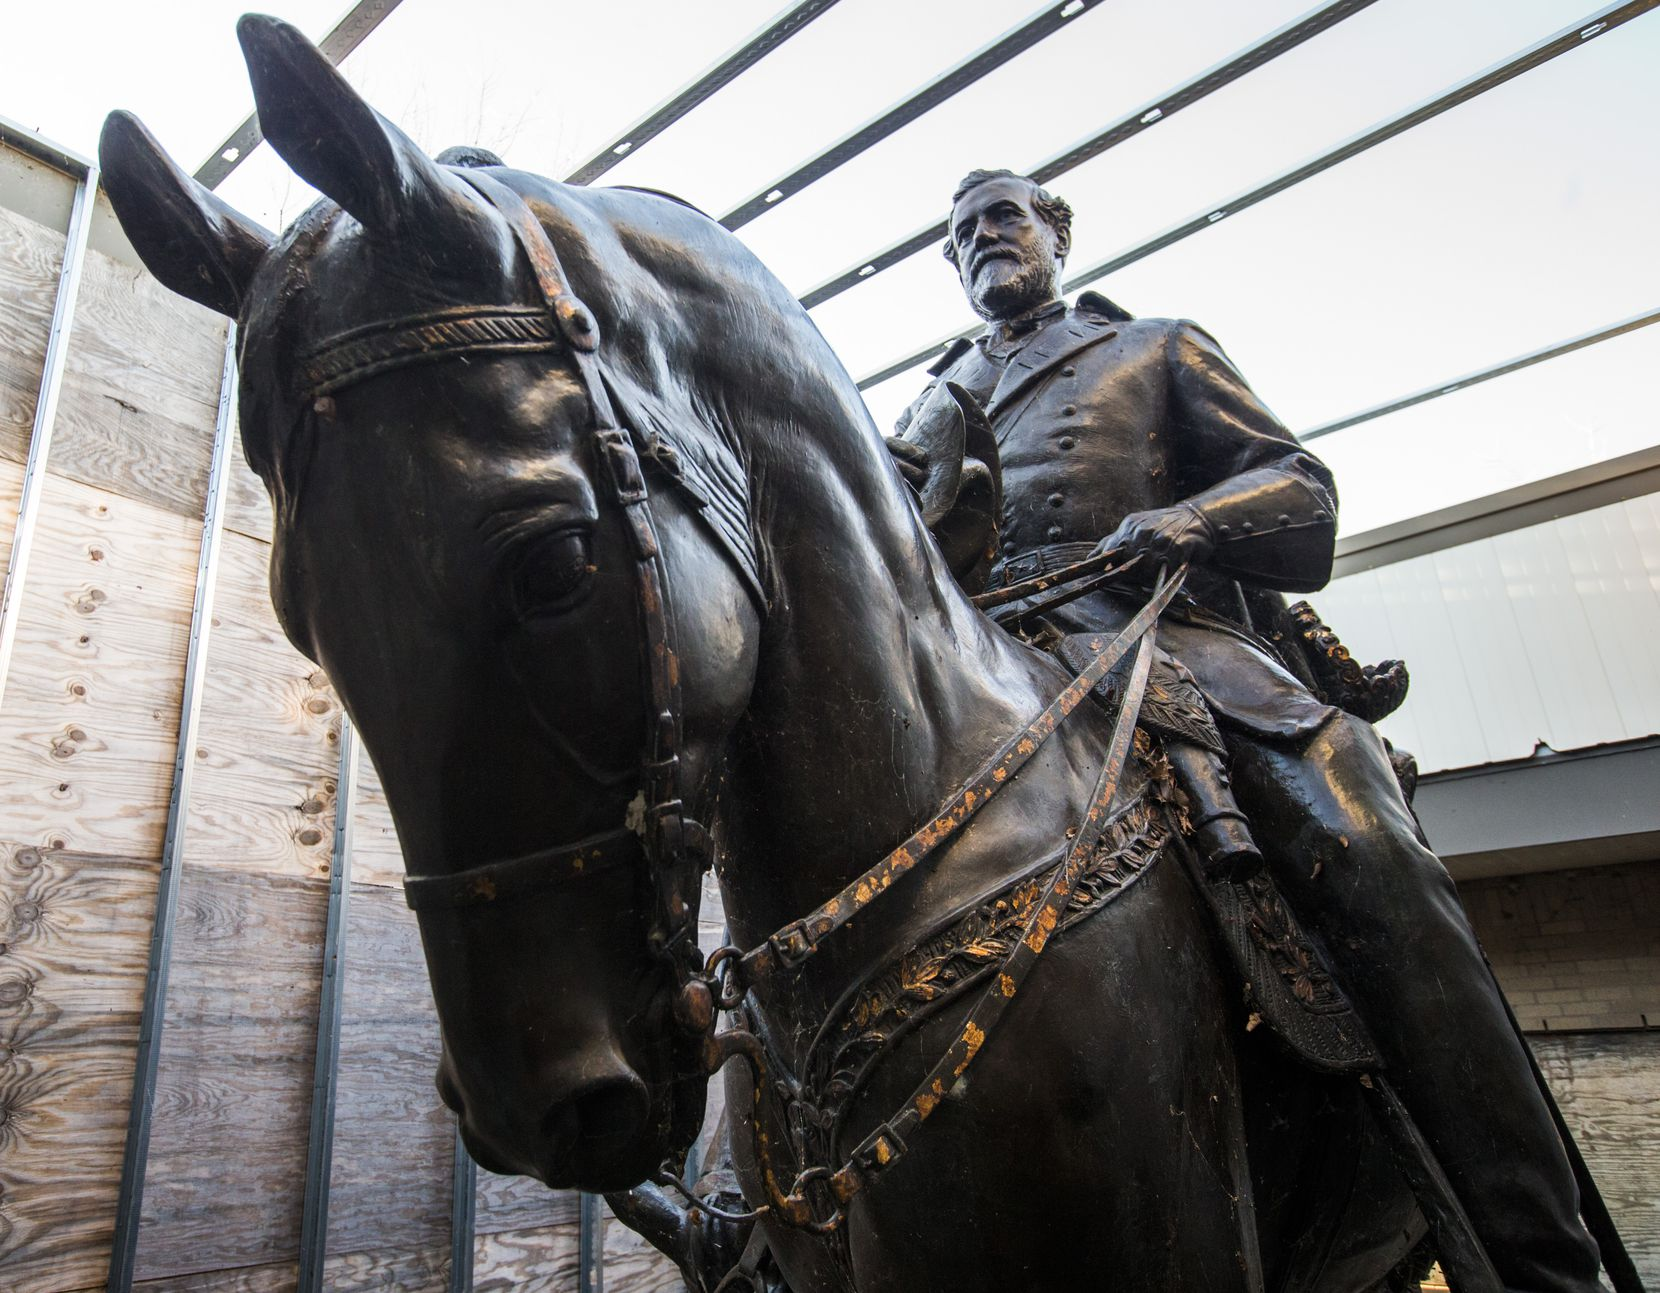 Few people have seen what became of Alexander Phimister Proctor's statue of Robert E. Lee (left) and a young soldier since its removal from the park formerly known as Lee Park,  where it stood for over 80 years until it's removal in Sept. 2017. Shortly before Christmas, on Dec. 20, 2018, The Dallas Morning News got a behind-the-scenes look the secure storage area where the statue of the Confederate general is being kept in an enclosure of plywood and metal studs, at Hensley Field, the former Naval Air Station on the west side of Mountain Creek Lake in Dallas.